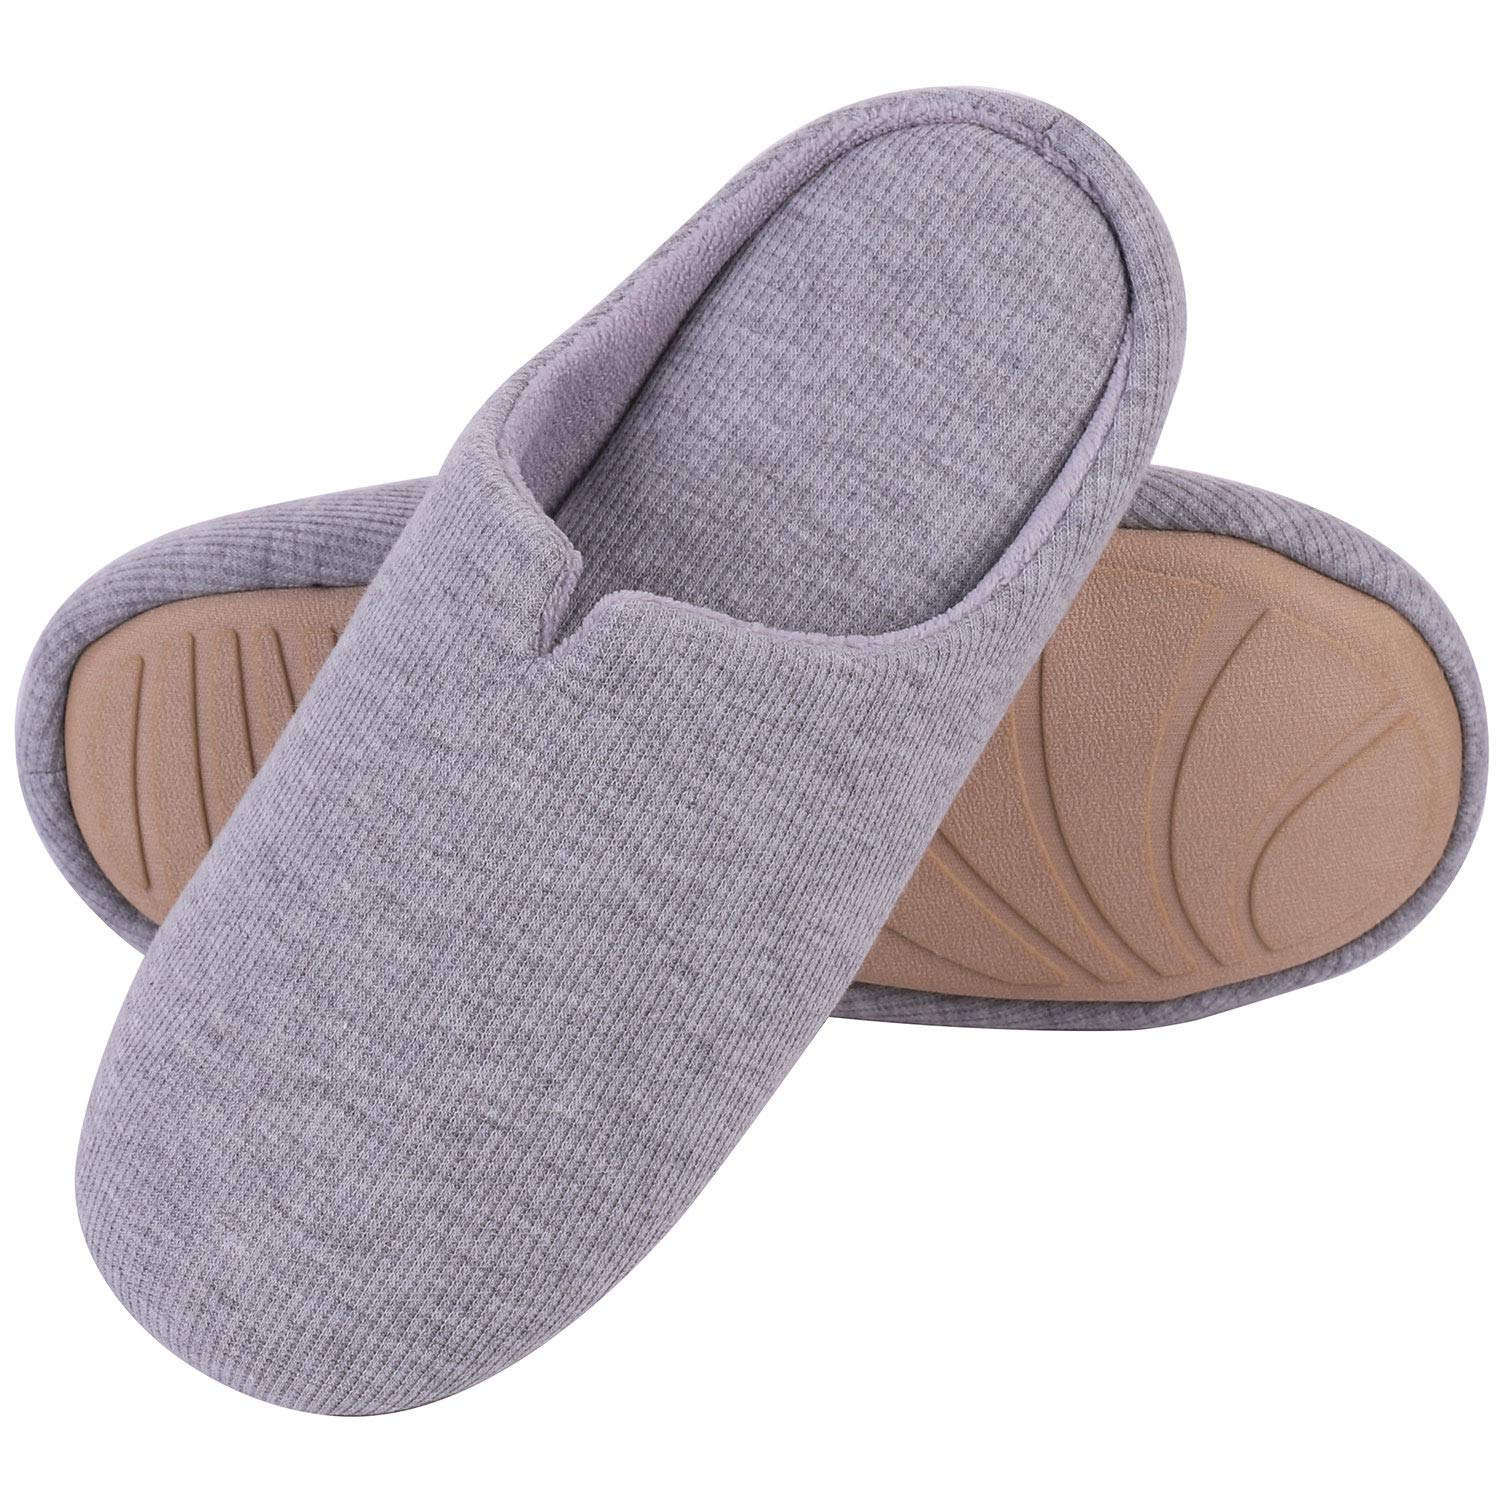 f67380a3d87c4 Men's & Women's Comfort Cotton Knit Memory Foam Slippers Light Weight Terry  Cloth House Shoes Anti-Skid Rubber Sole